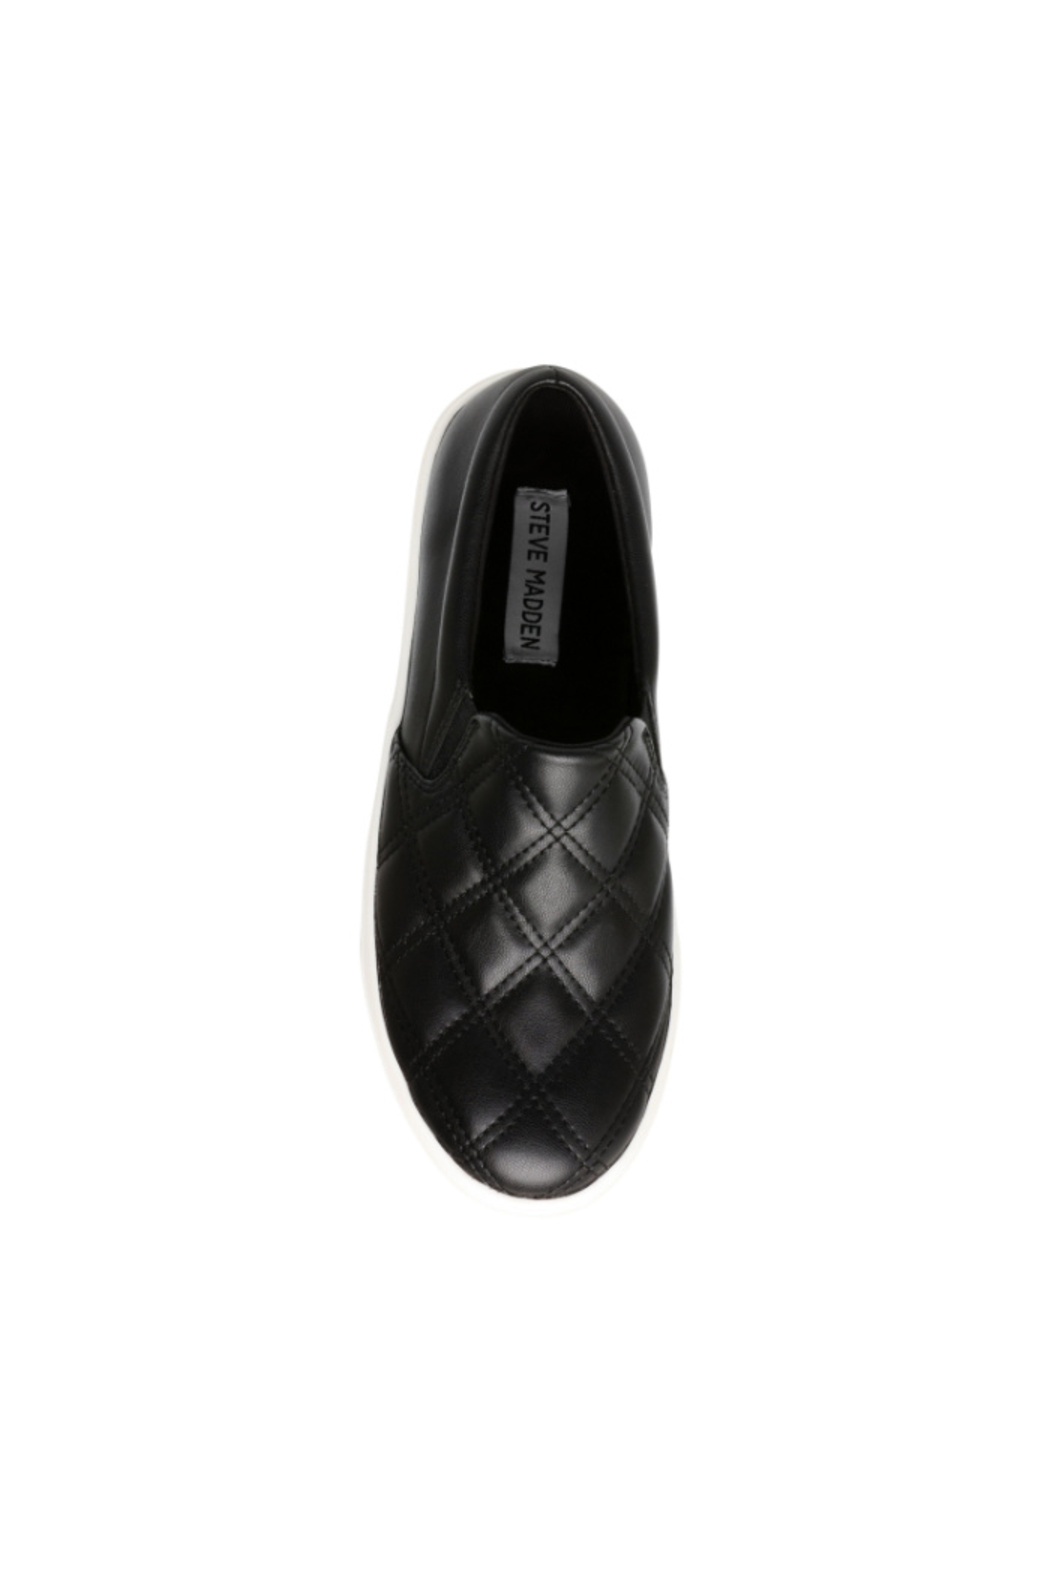 Steve Madden Women's Coulter Quilted in Black - Side Cropped Image